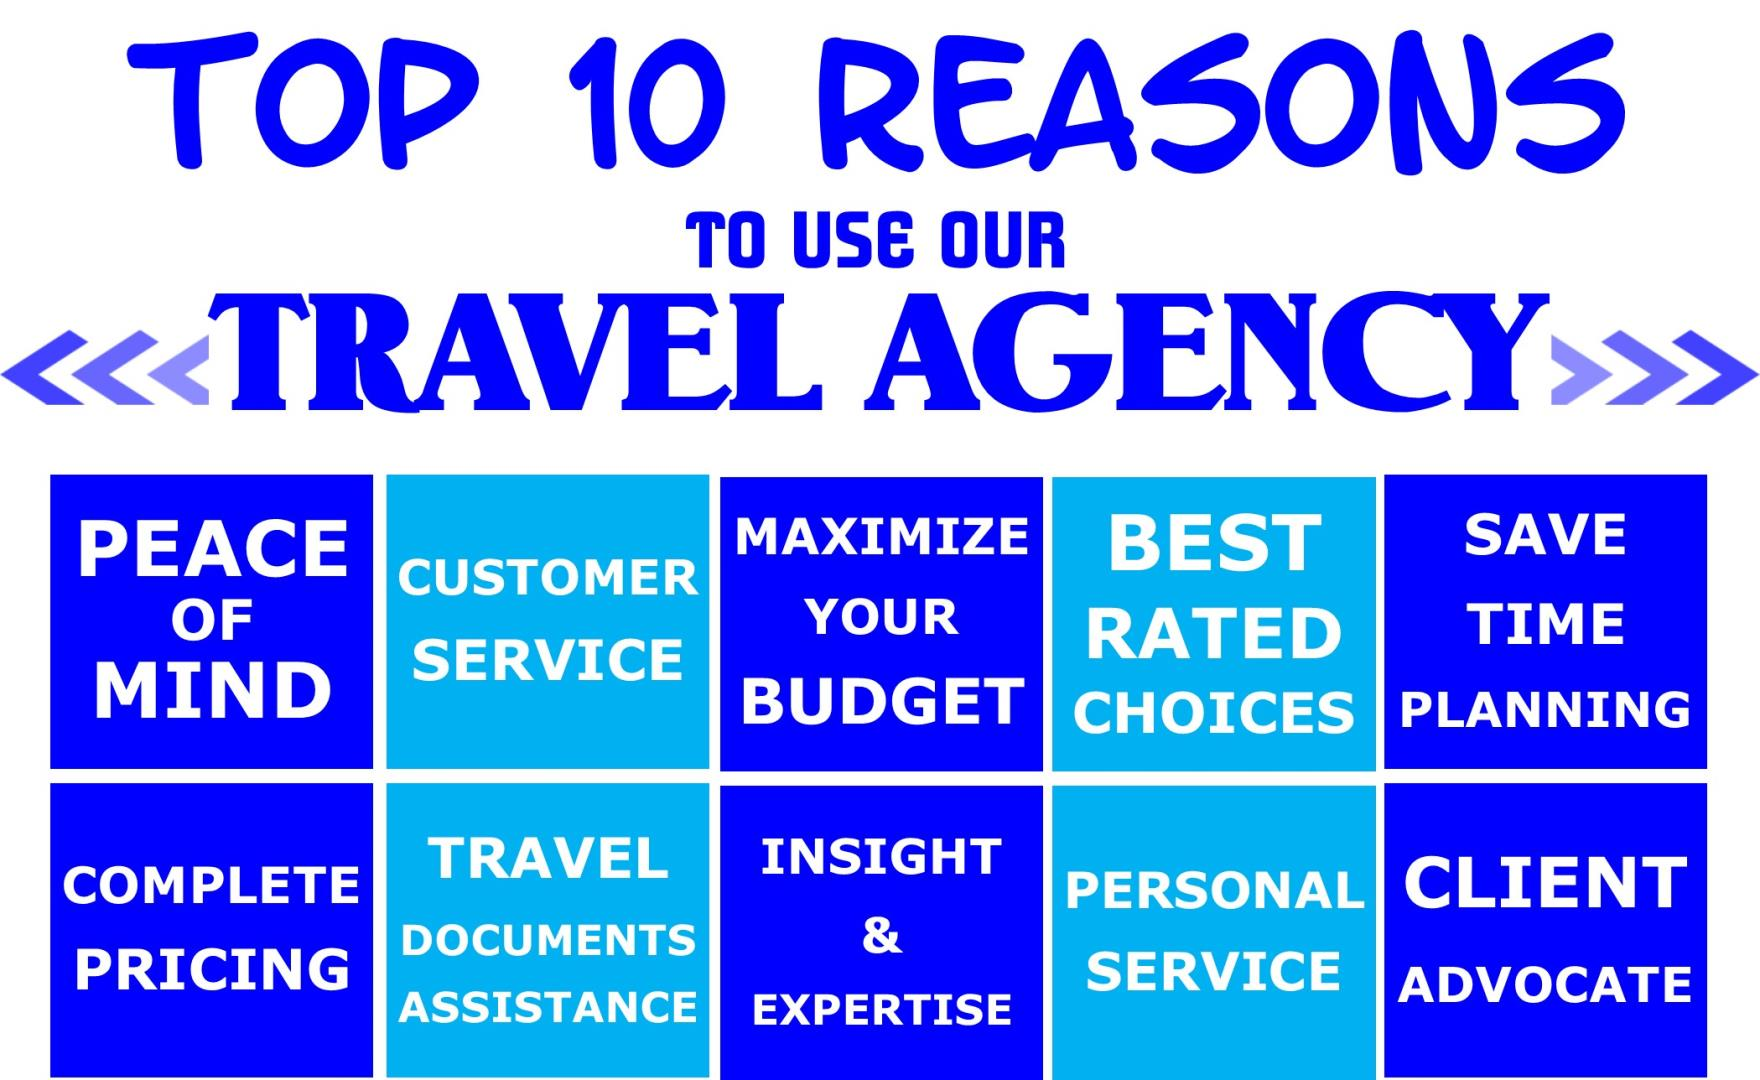 Top Ten Reasons To Use Our Agency.